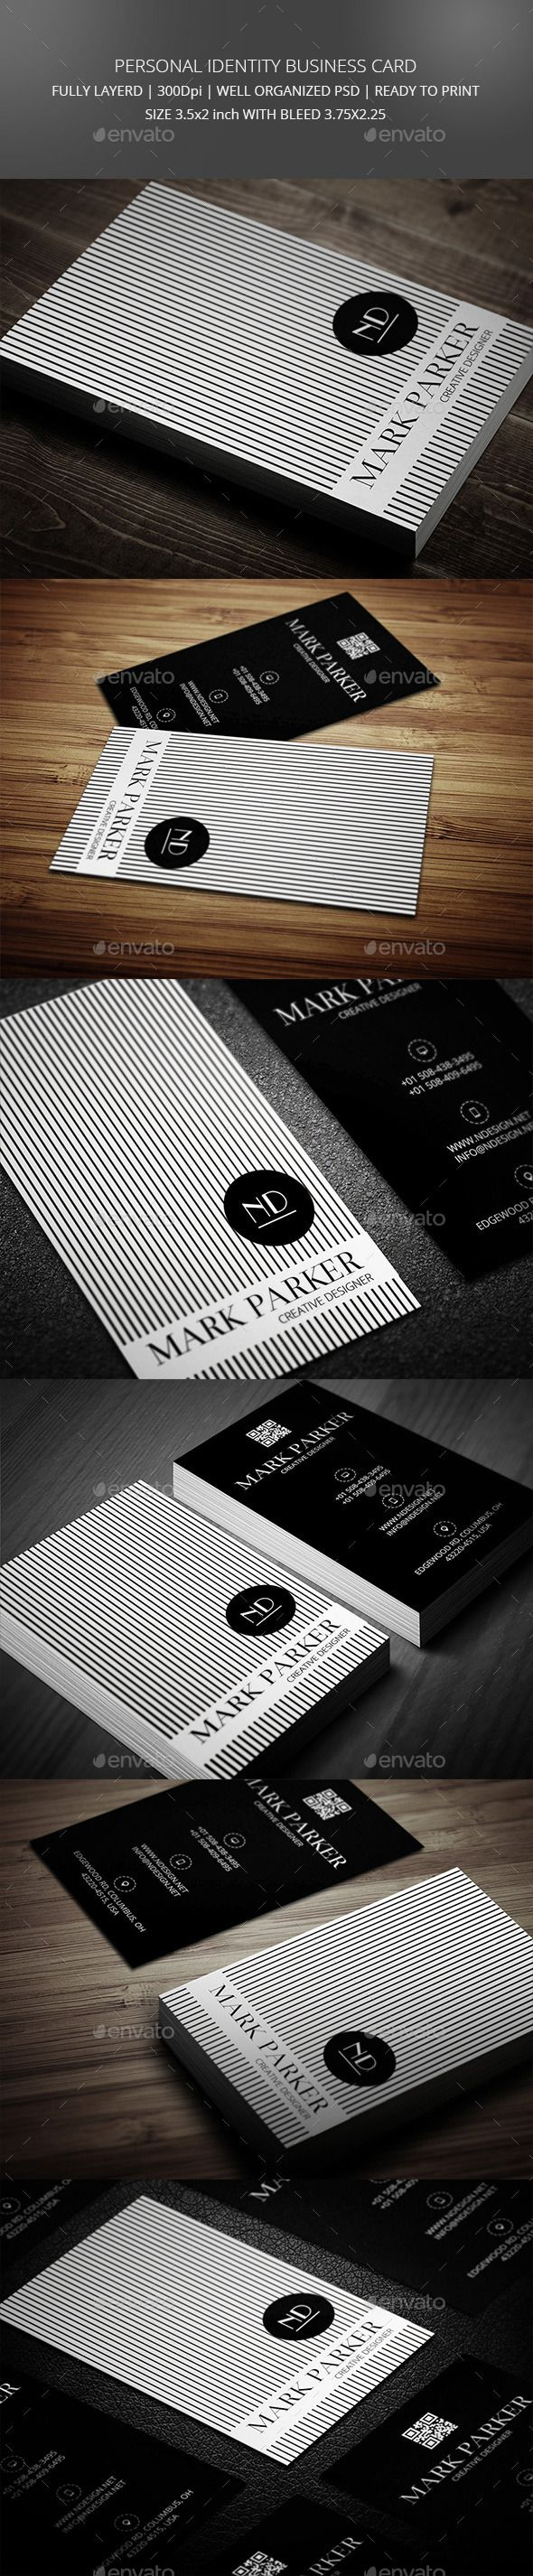 Best 25 professional business cards ideas on pinterest modern best 25 professional business cards ideas on pinterest modern business cards visiting card format and business card prices magicingreecefo Gallery